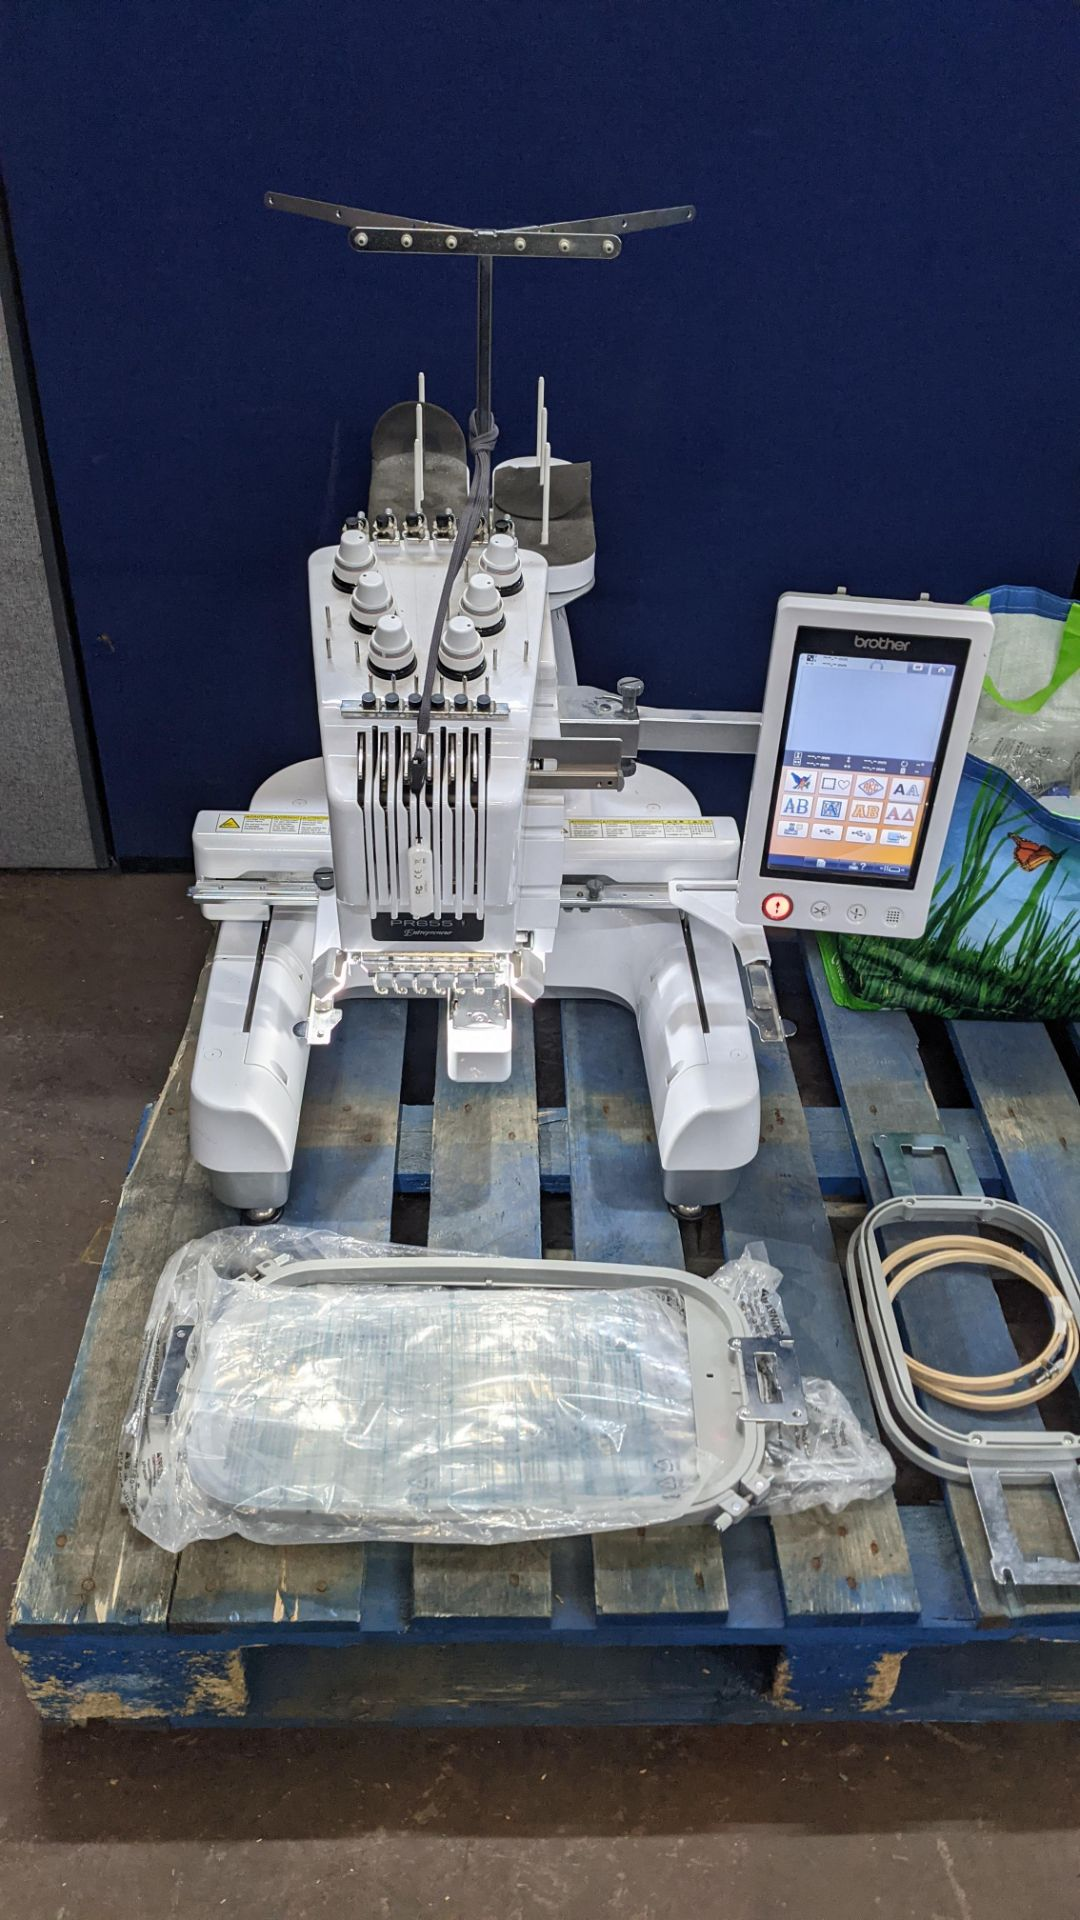 Brother PR655 single head 6 needle embroidery machine, serial no. E72364-D6B113501 incorporating lar - Image 7 of 25